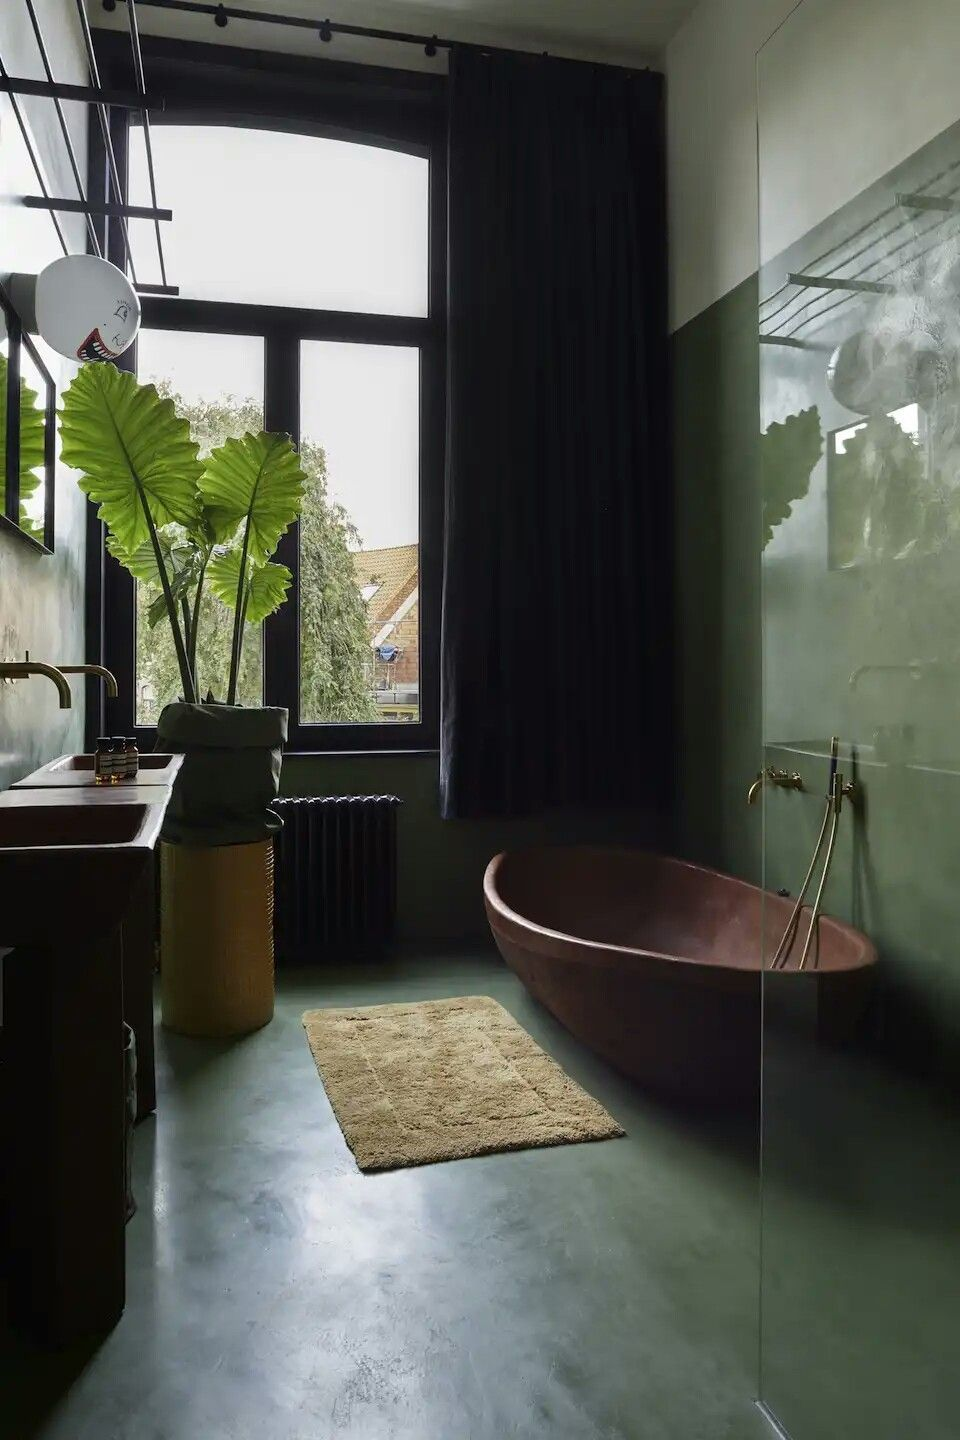 sage bathroom walls dark green concrete floors dark brown bathtub soft bathroom mat